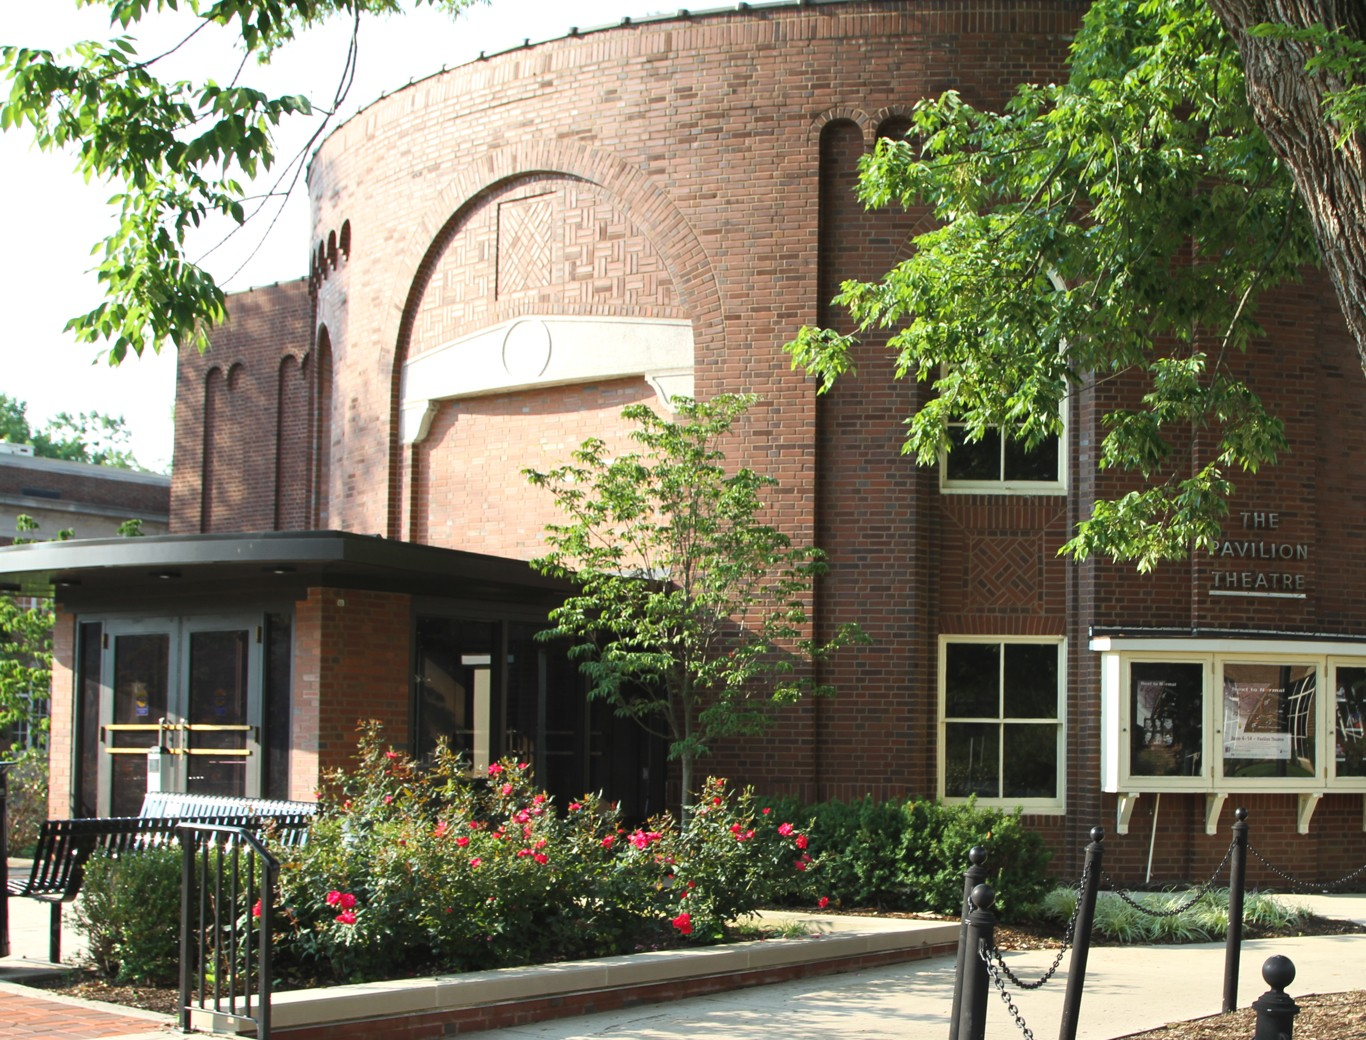 Pavilion Theatre on Penn State's University Park campus